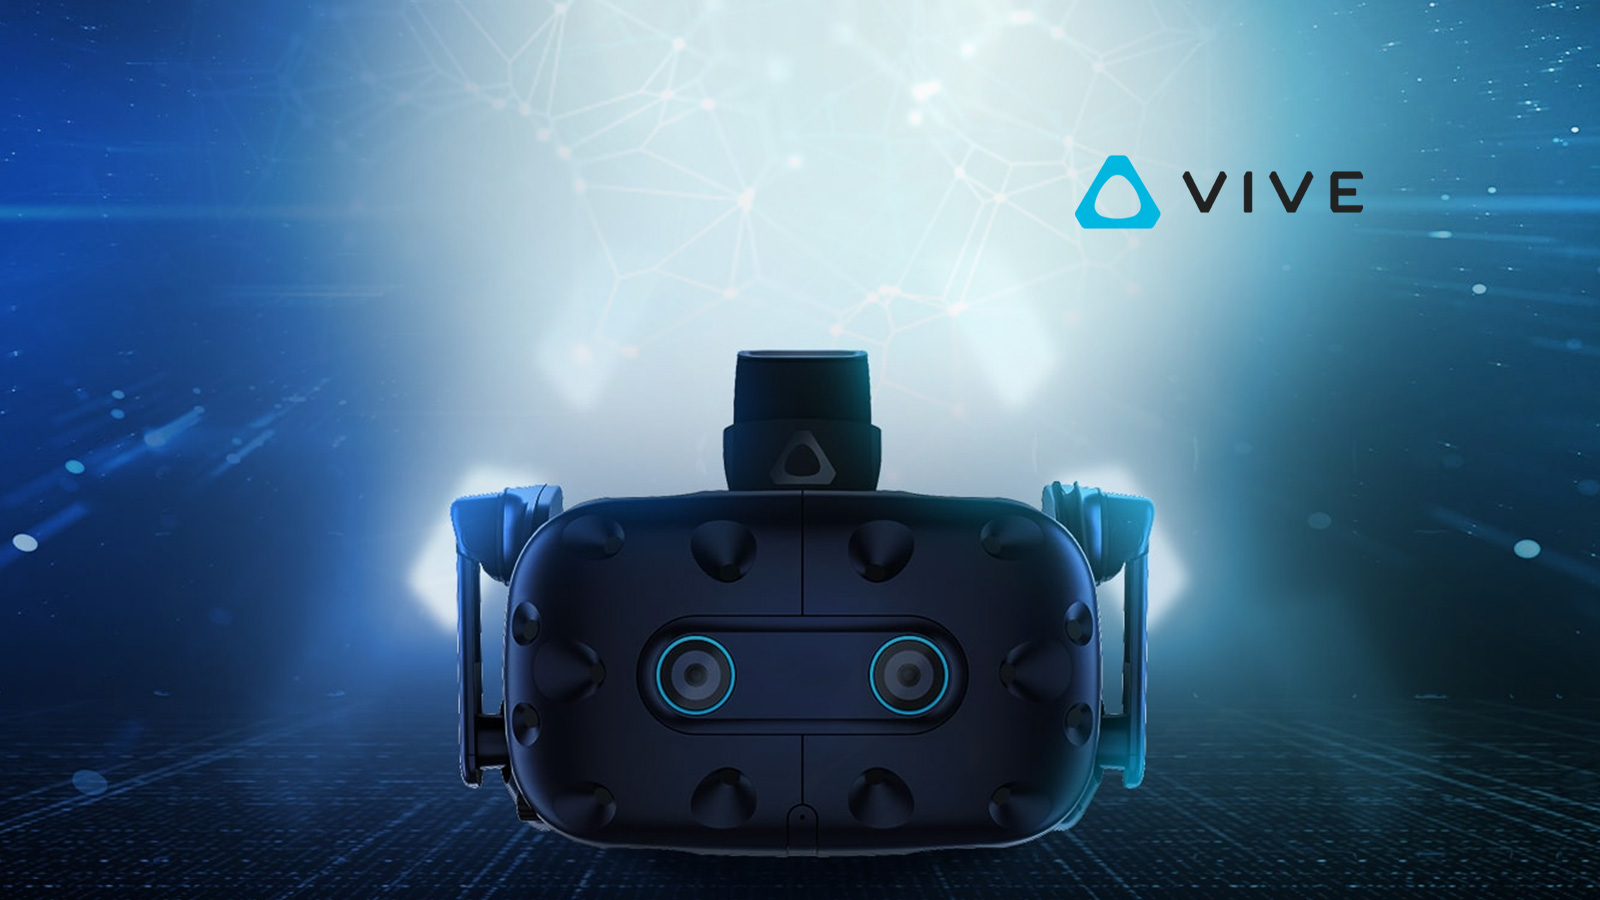 HTC VIVE Pro Eye Announced as Preferred VR Headset for